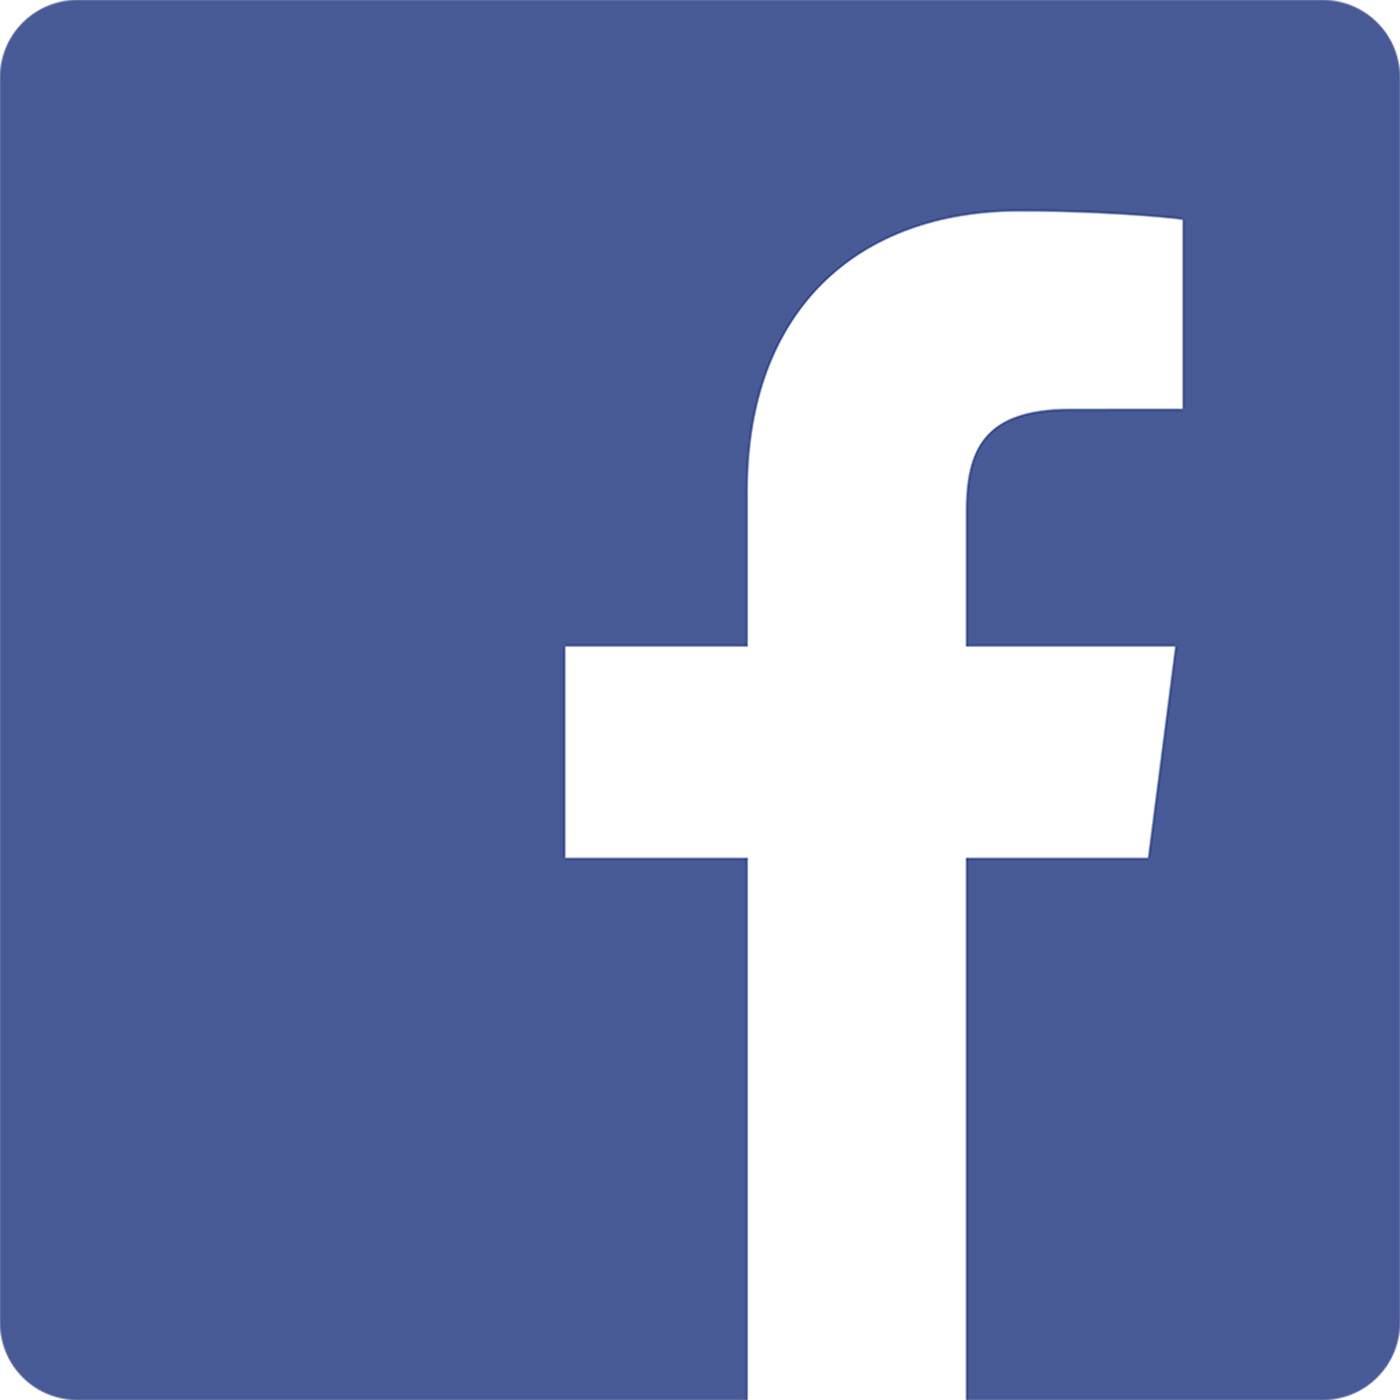 Facebook logo. Facebook is an American online social media and social networking service company based in Menlo Park, California.